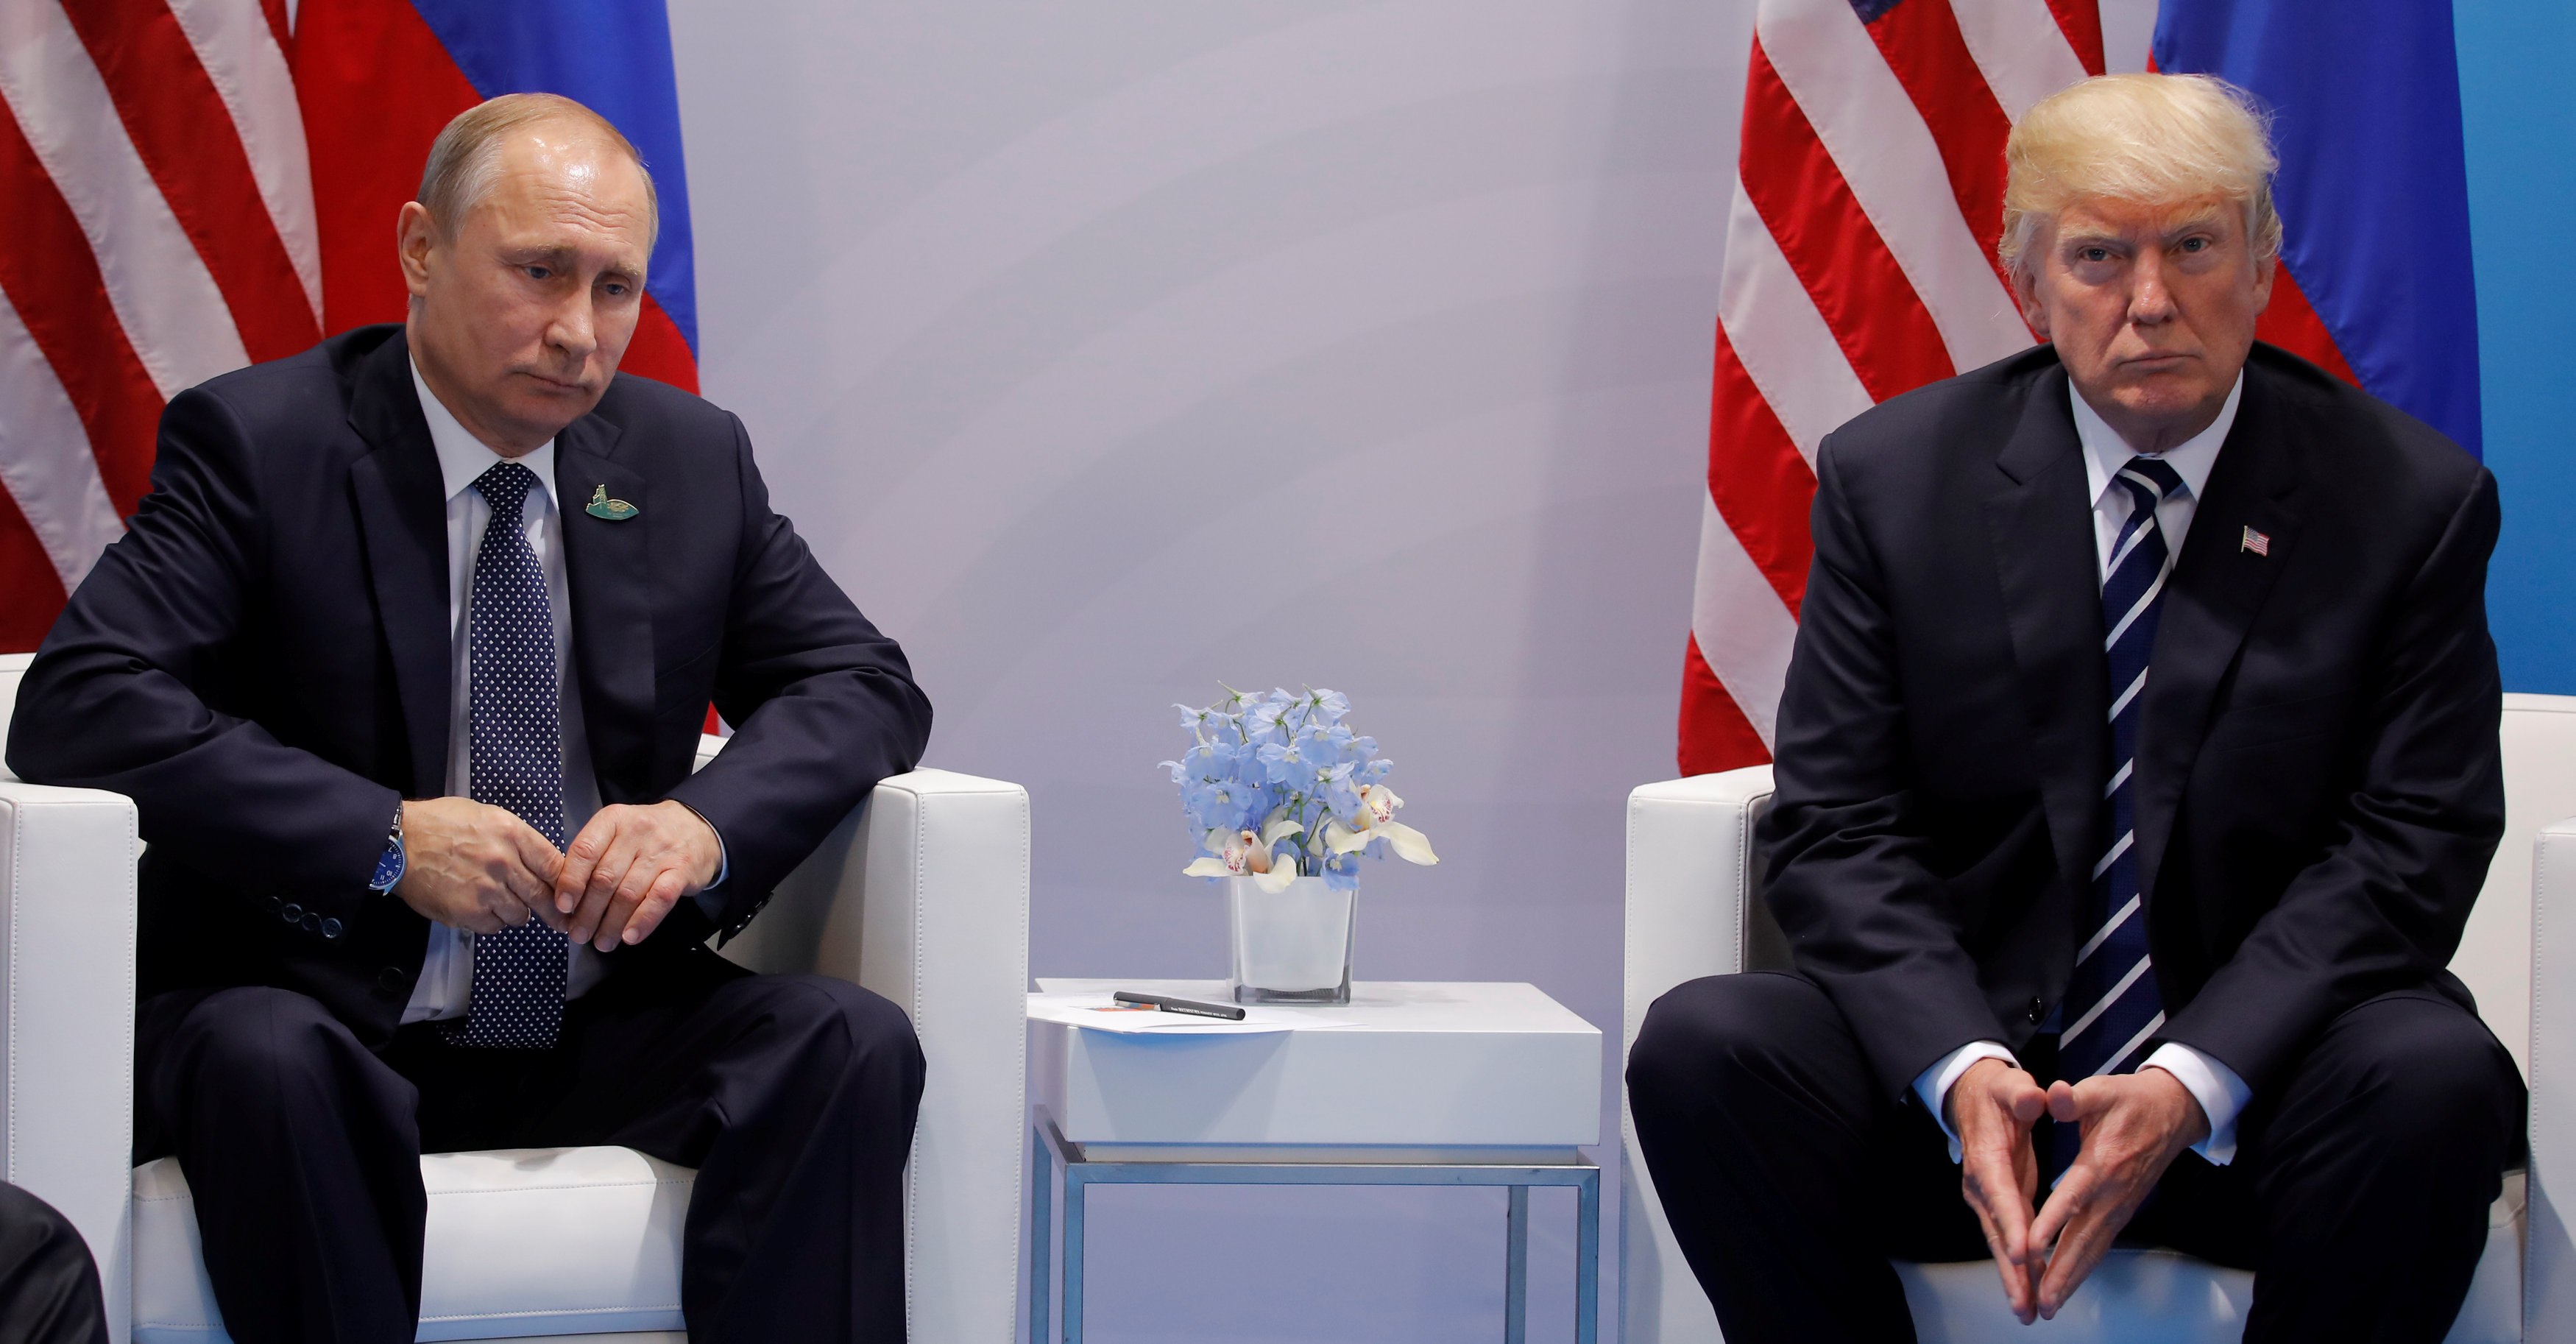 U.S. President Donald Trump meets with Russian President Vladimir Putin during their bilateral meeting at the G20 summit in Hamburg, Germany July 7, 2017. (Carlos Barria / Reuters)